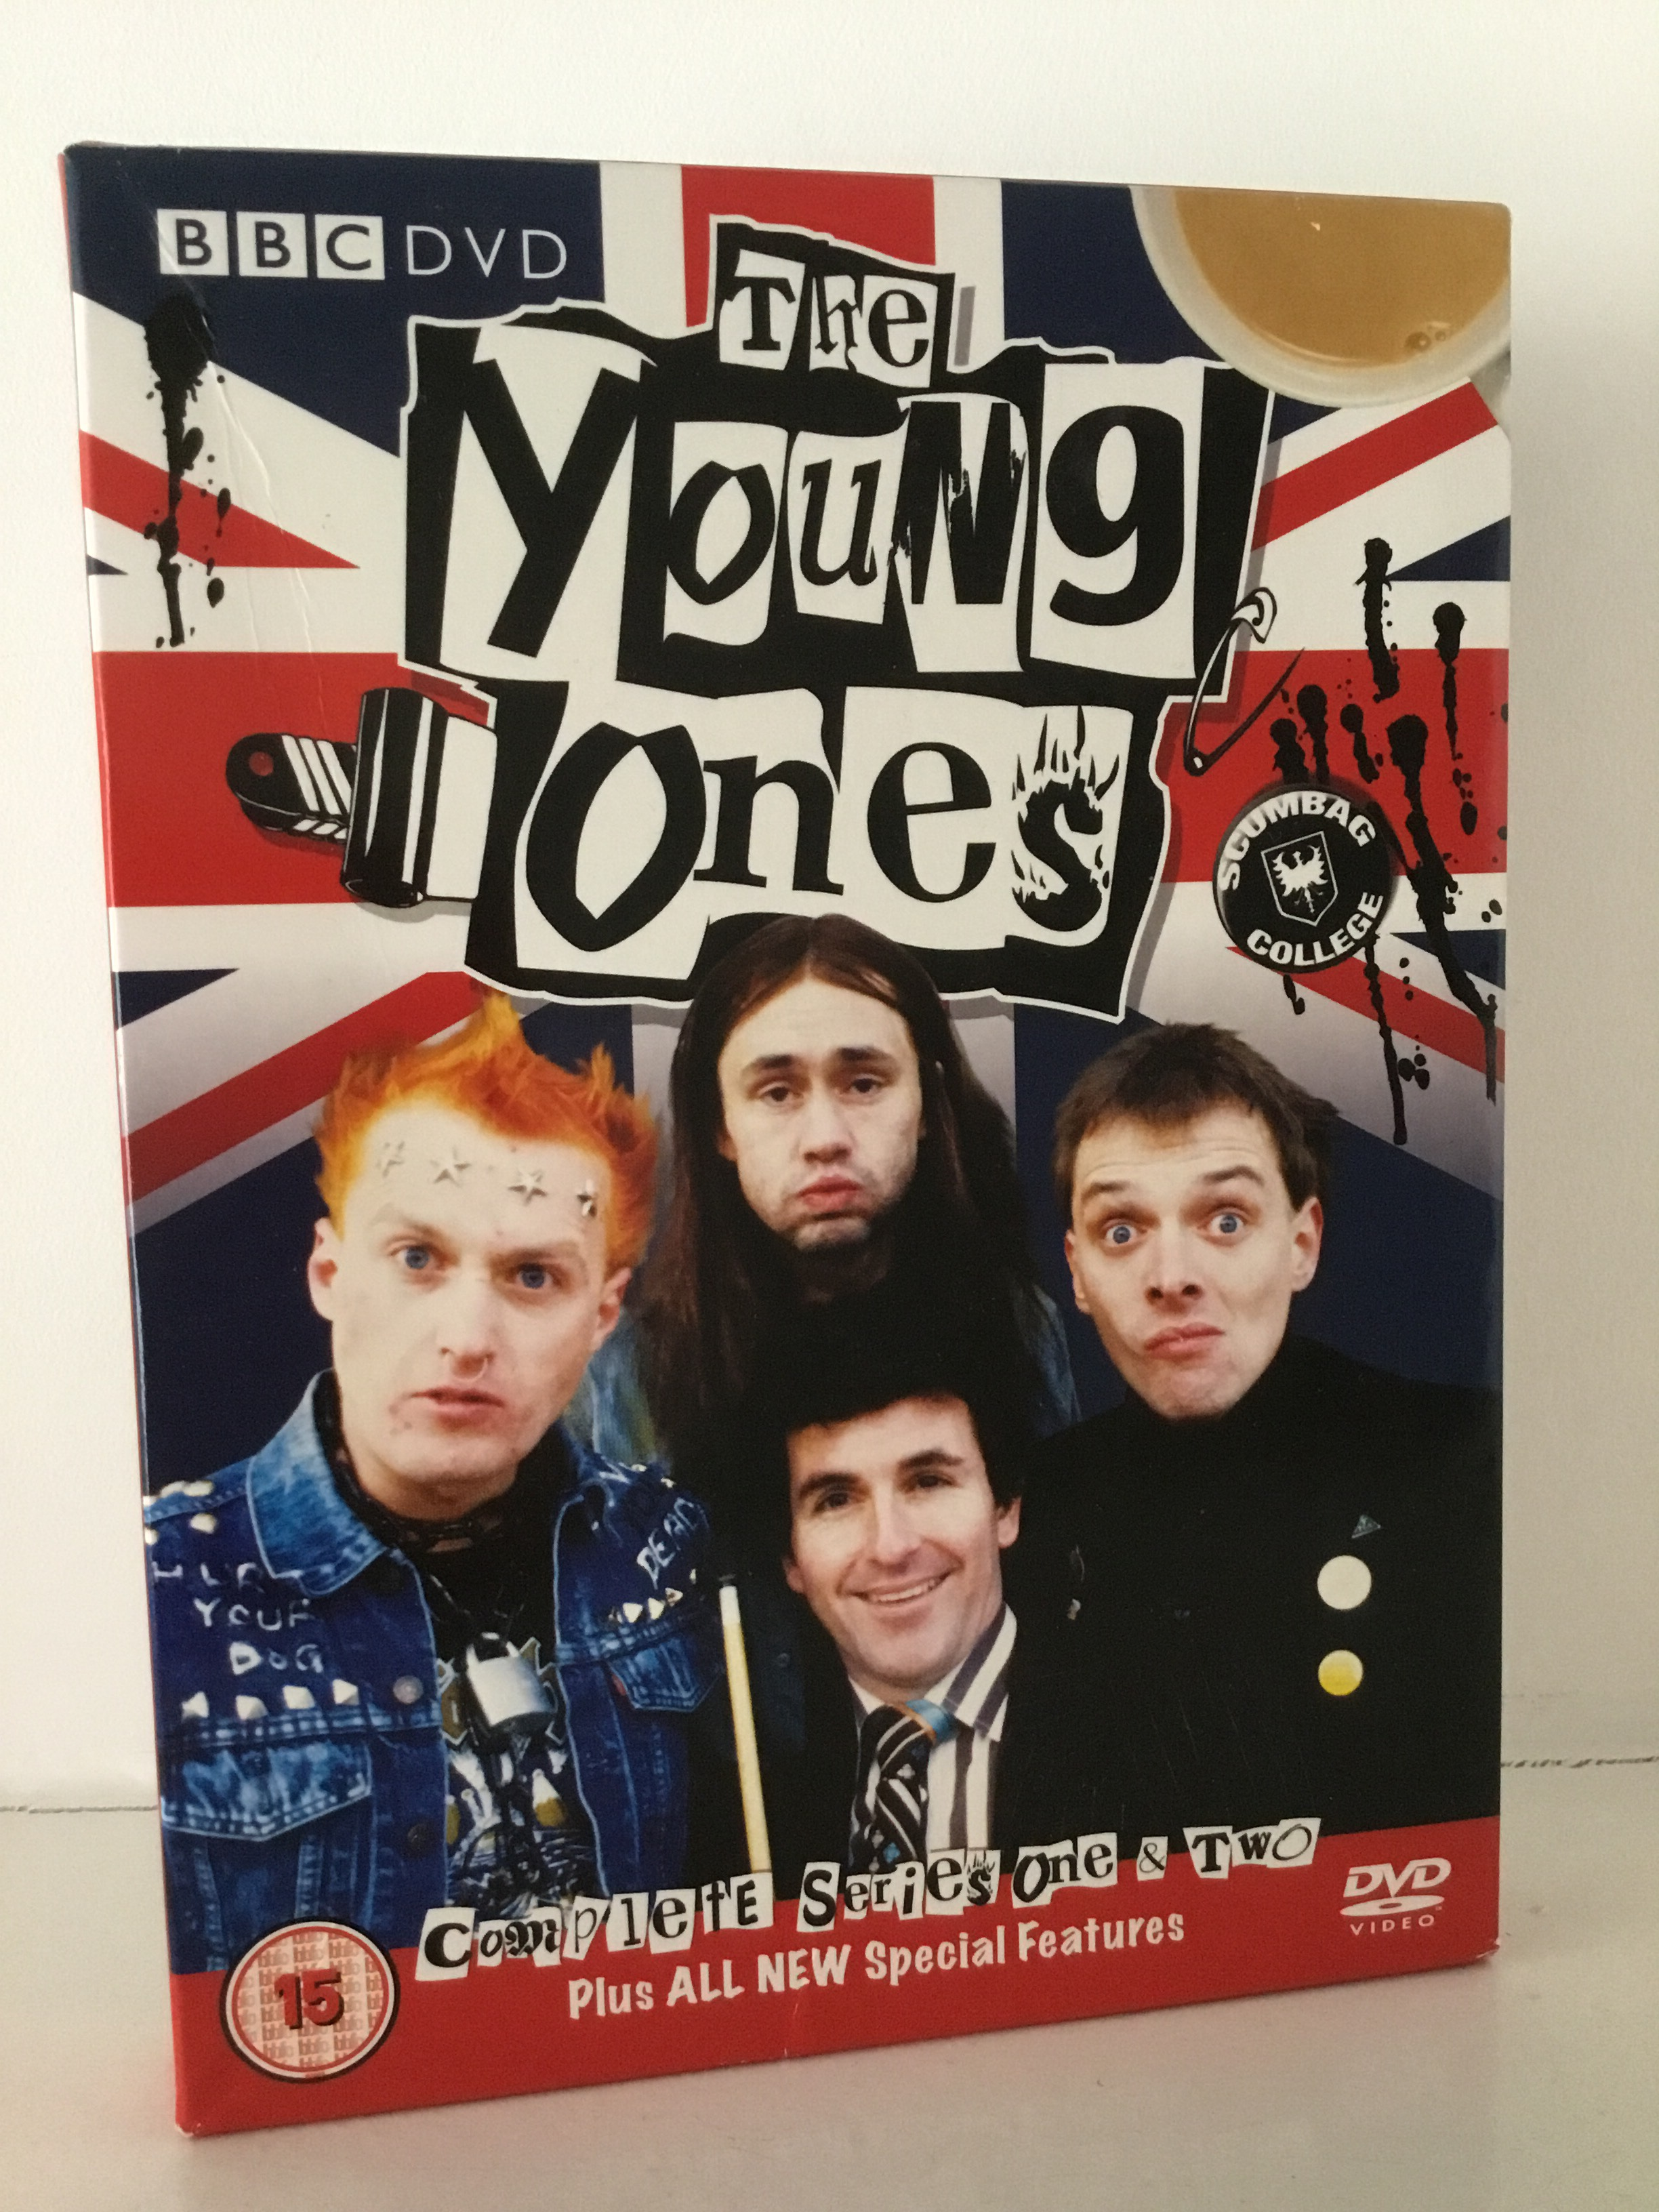 VHS/DVDs, The Young Ones dvd.